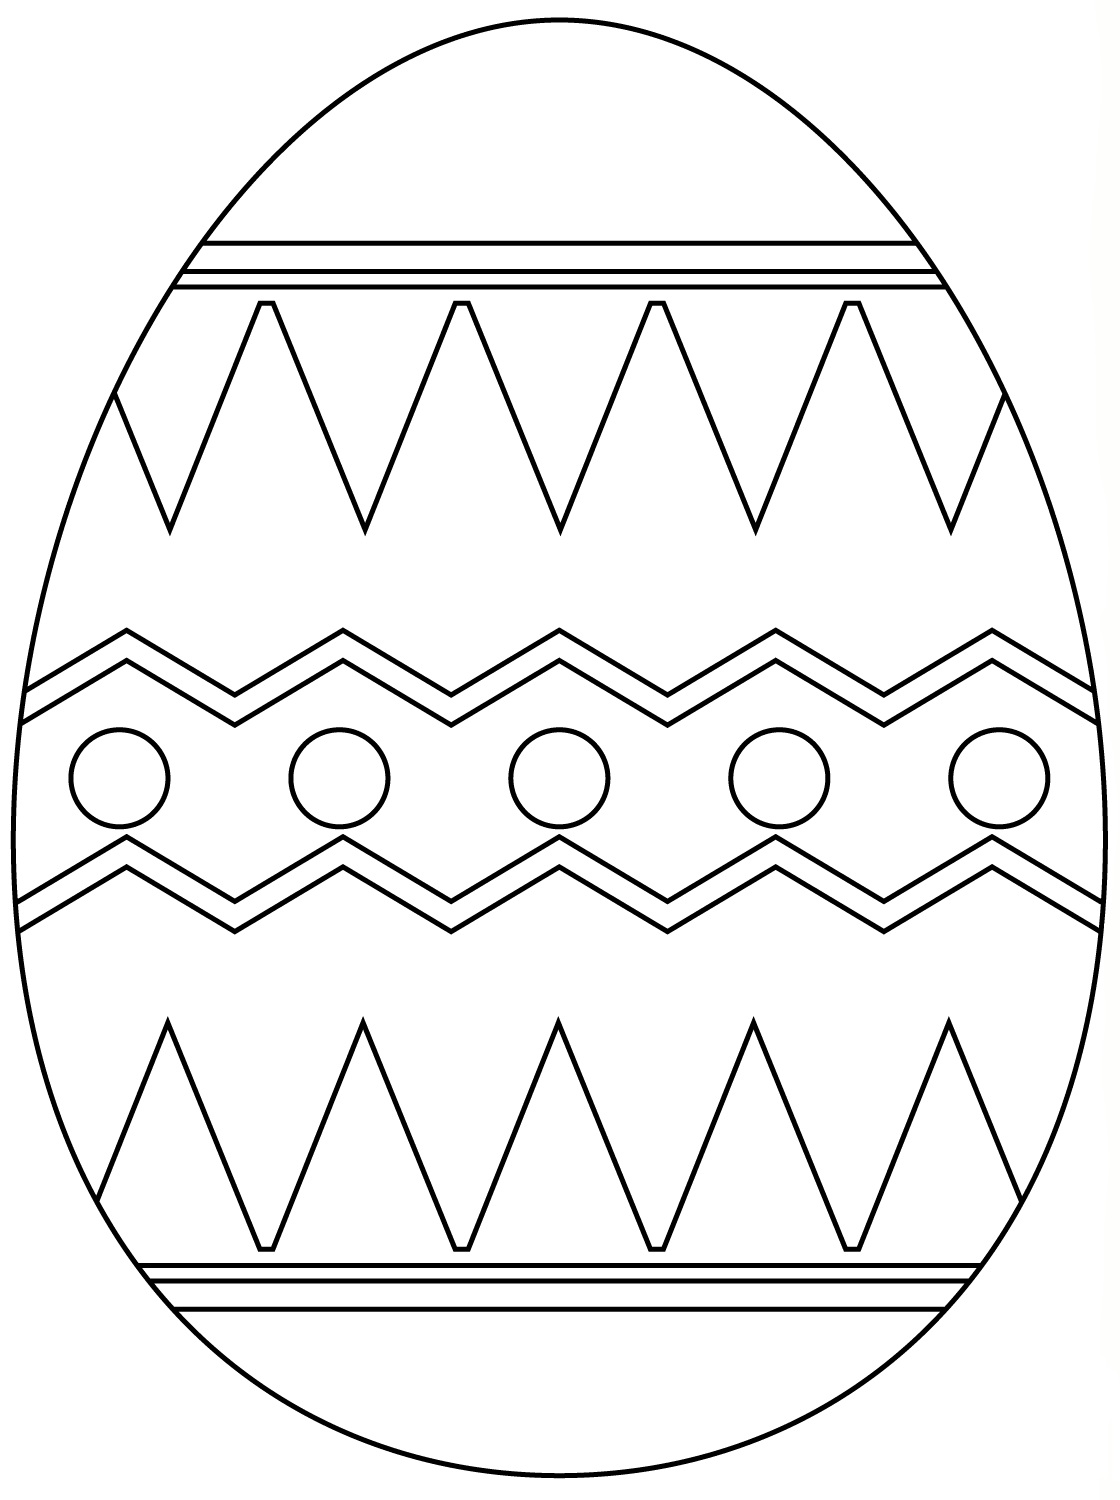 Colorful Easter Egg Pattern Coloring Page